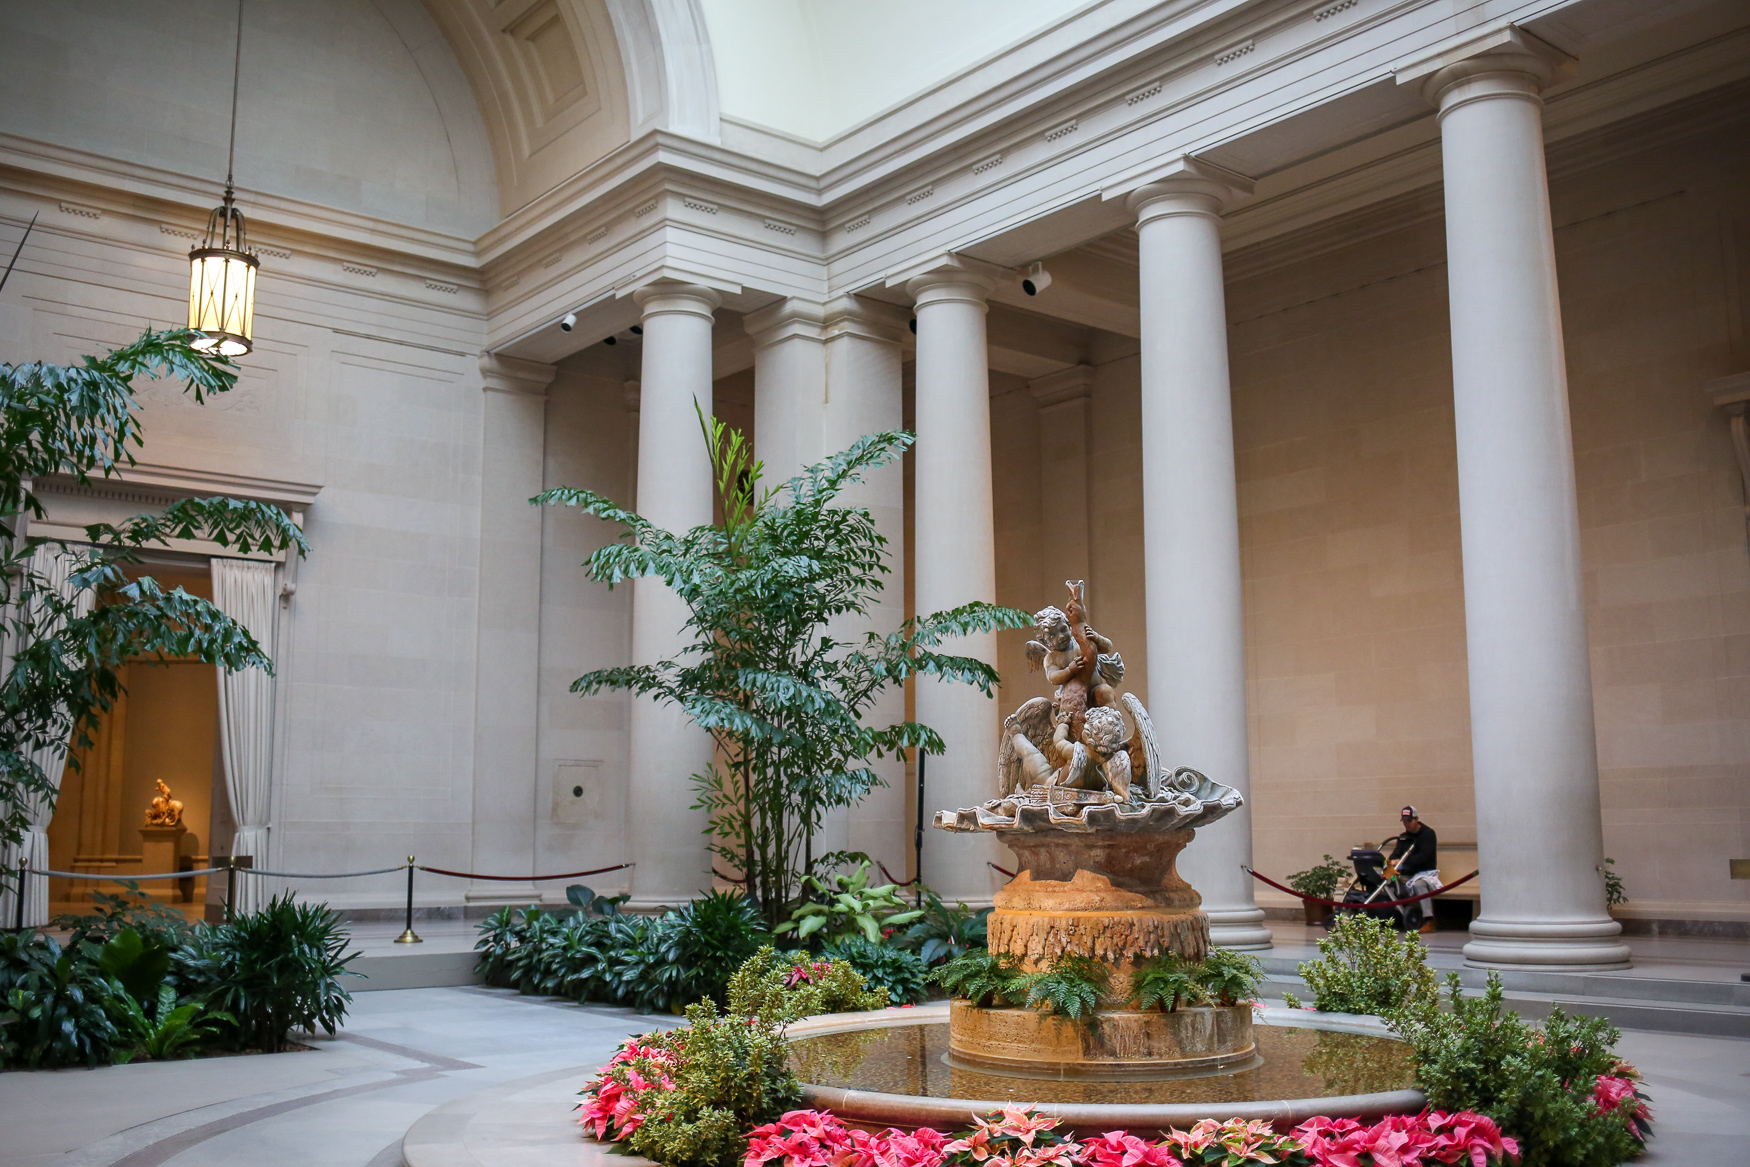 The National Gallery of Art's west building was established in 1937 and houses art from classical and modern artists. The neo-classic building also features plenty of interior courtyards with fountains.{ }(Amanda Andrade-Rhoades/DC Refined){ }